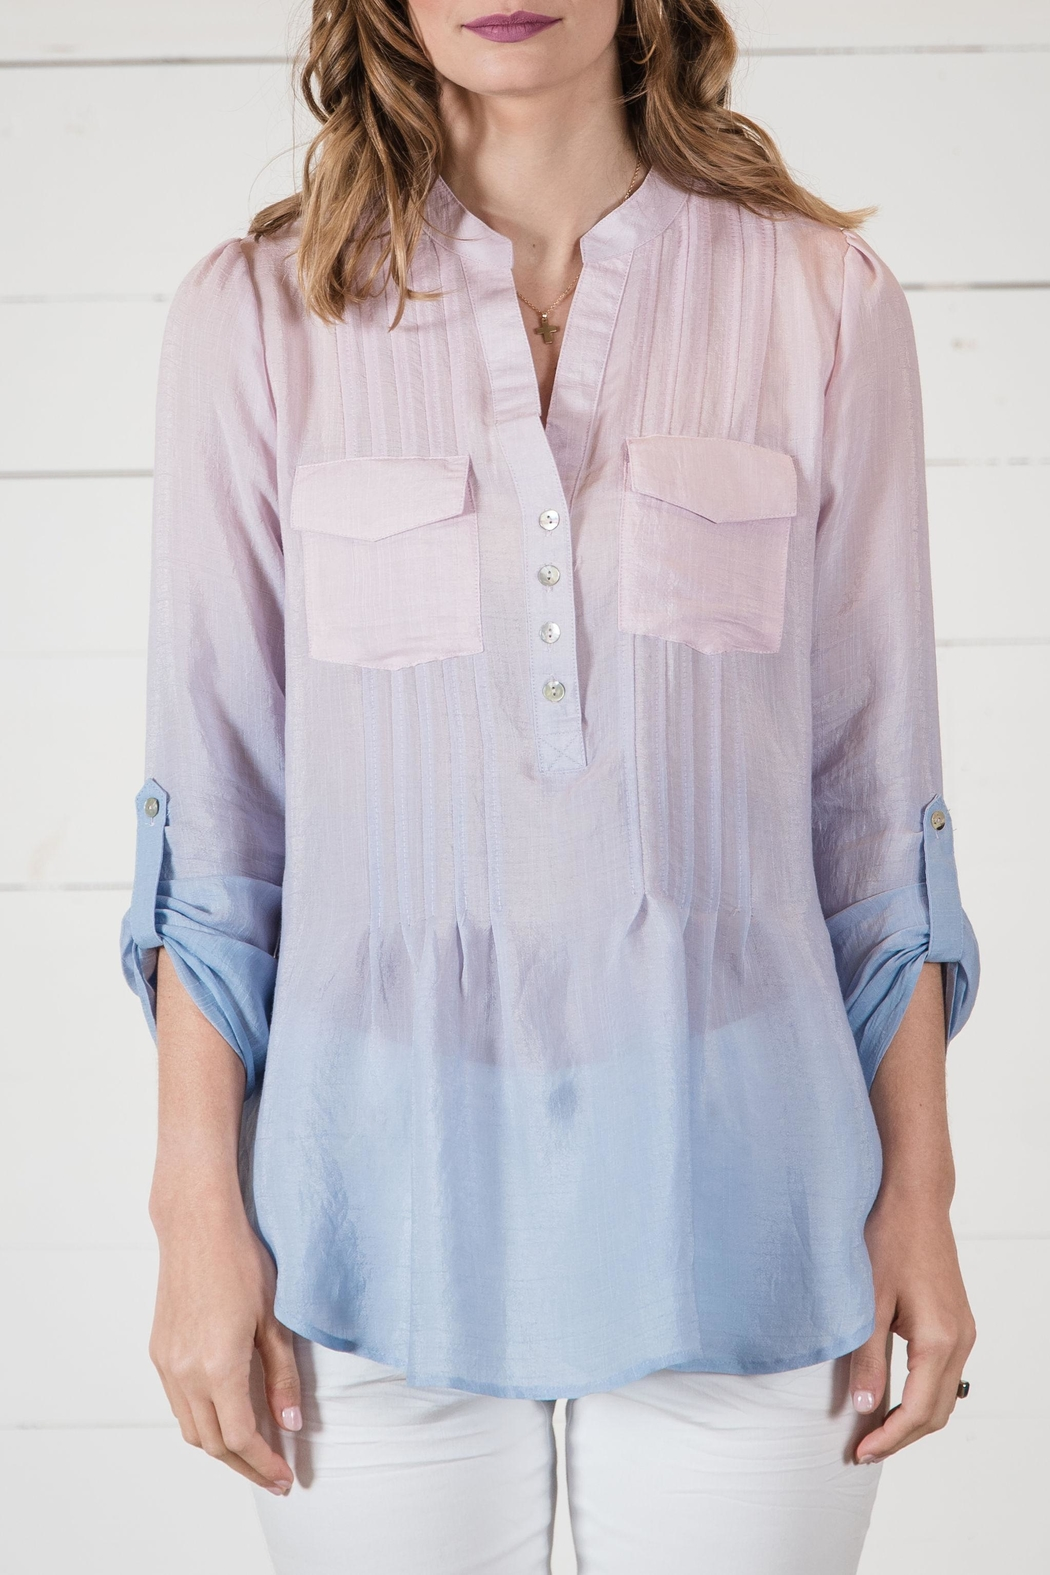 Go Fish Clothing Ombre Blouse - Main Image